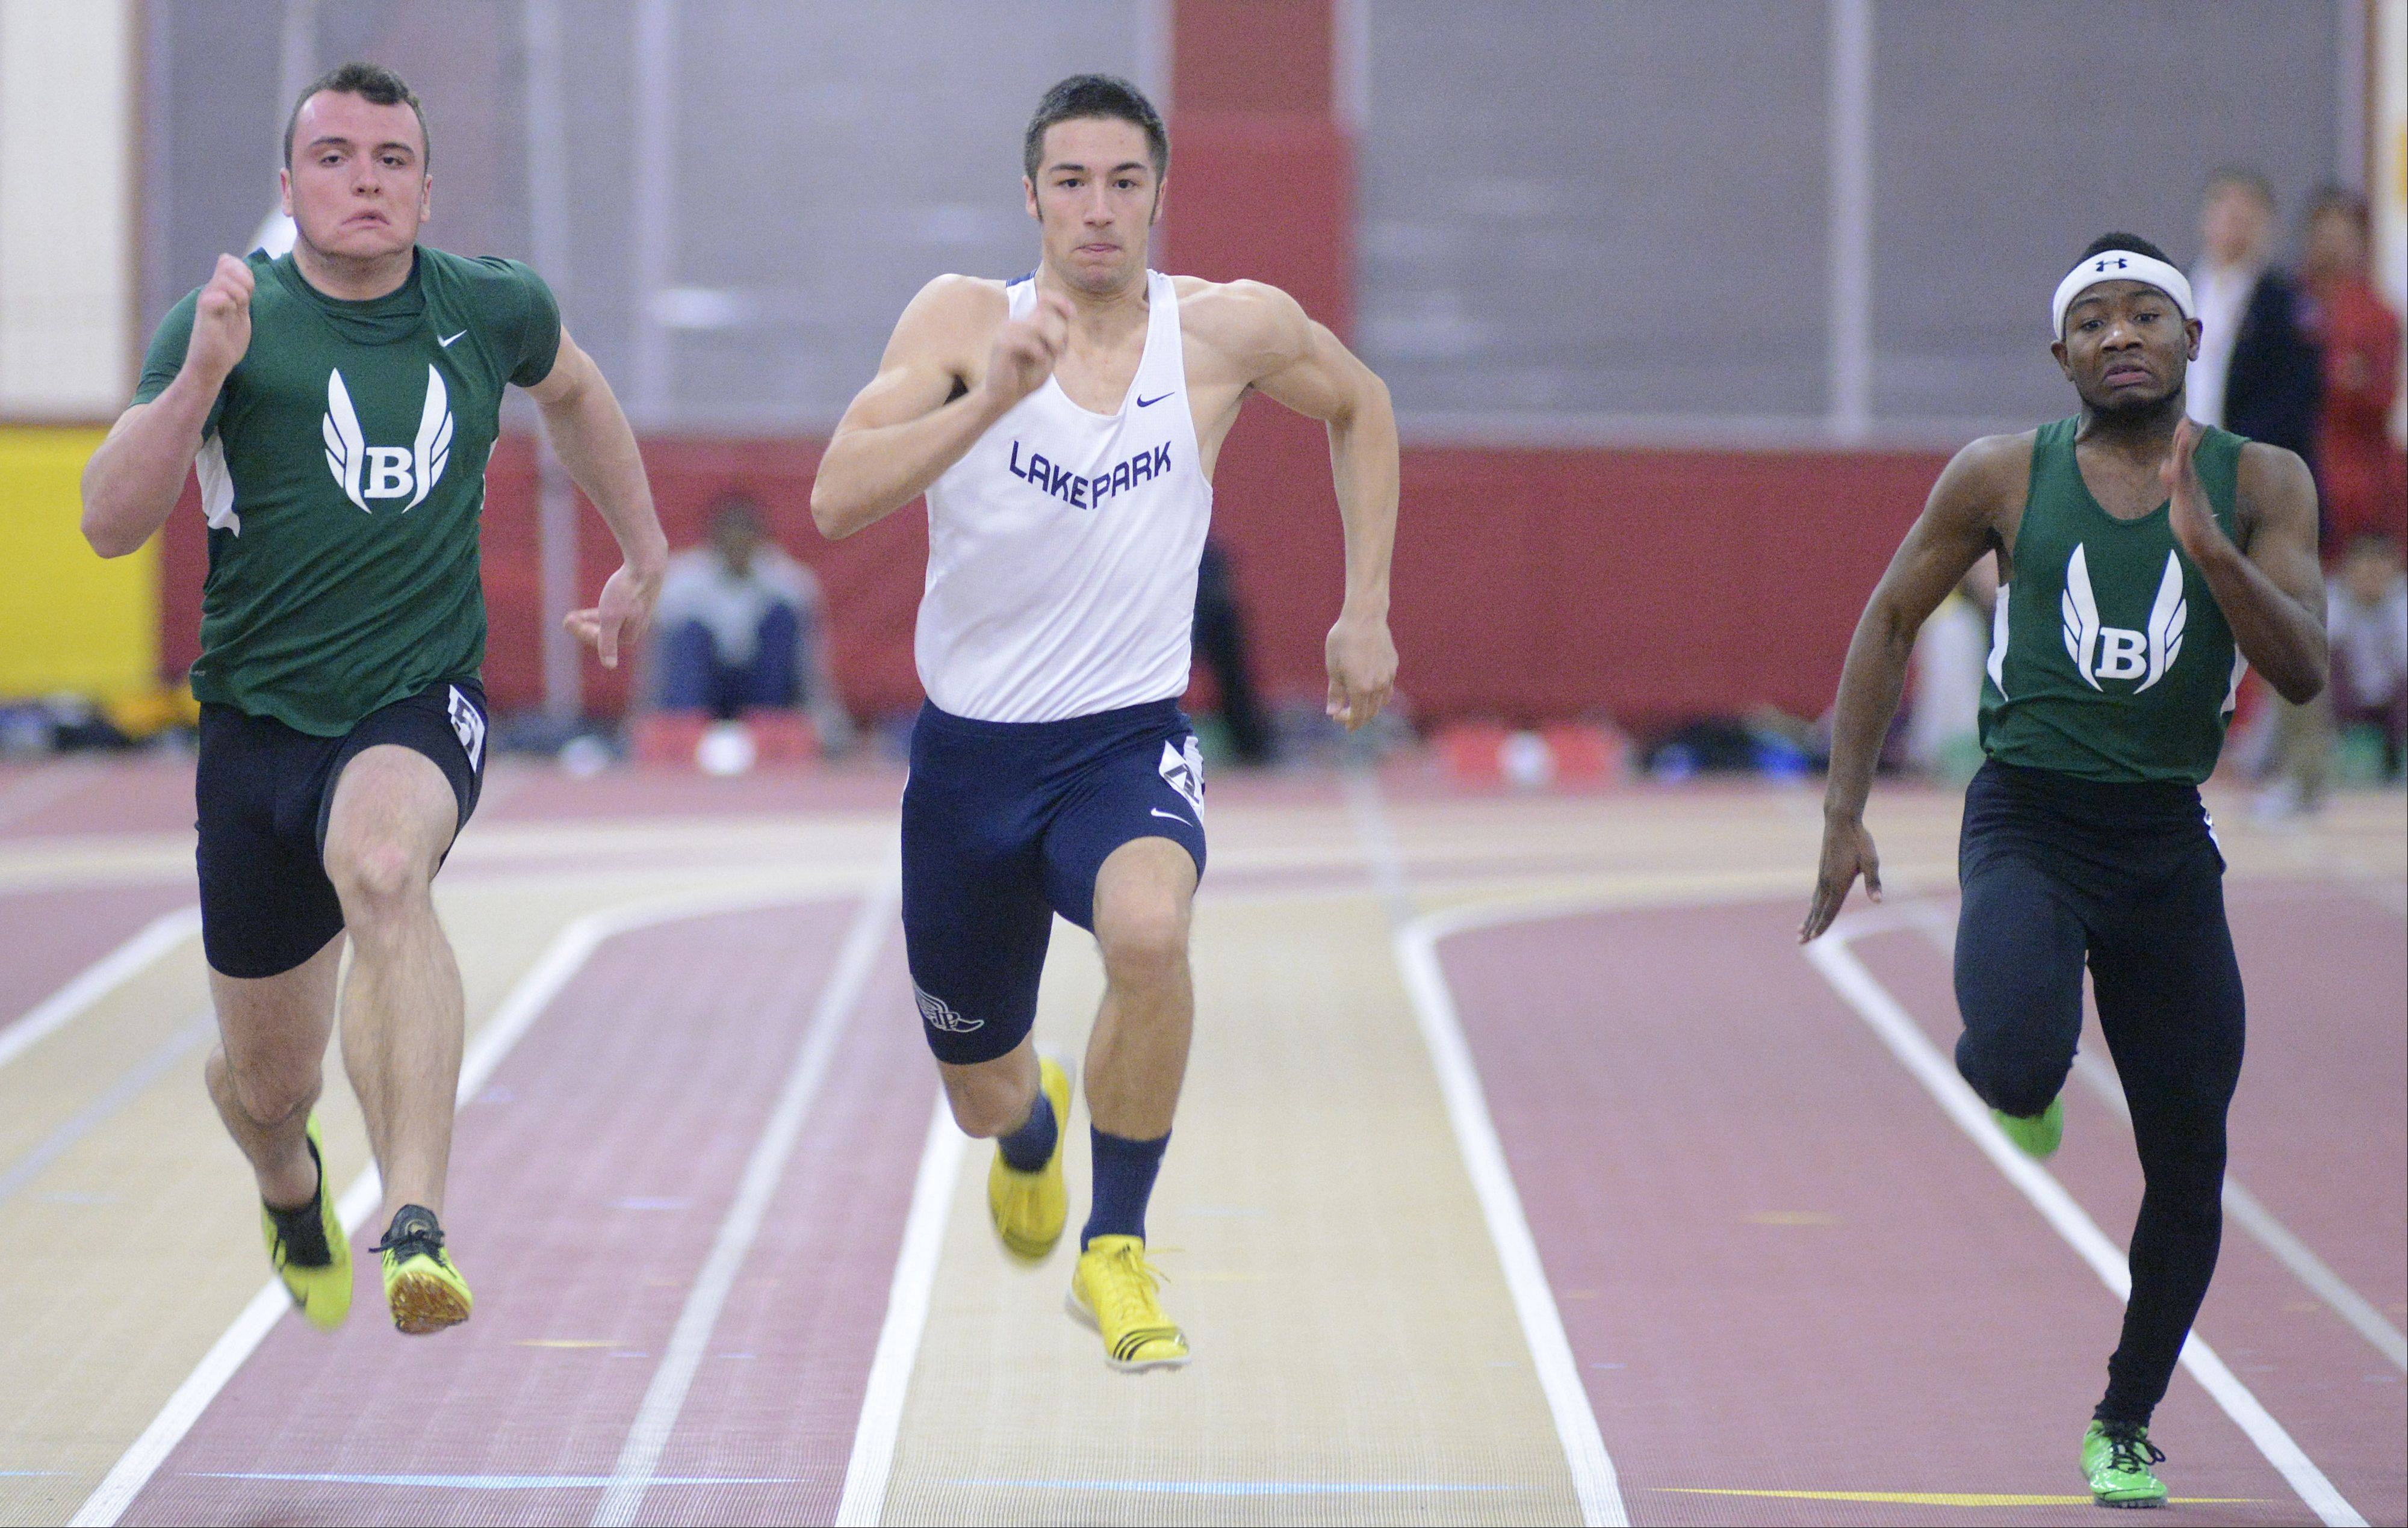 Bartlett's Hurshel Ross, Lake Park's Scott Filip and Bartlett's Aaron Everson in the third heat of the 55 meter dash prelims at the Upstate Eight Conference in Batavia on Saturday, March 16.